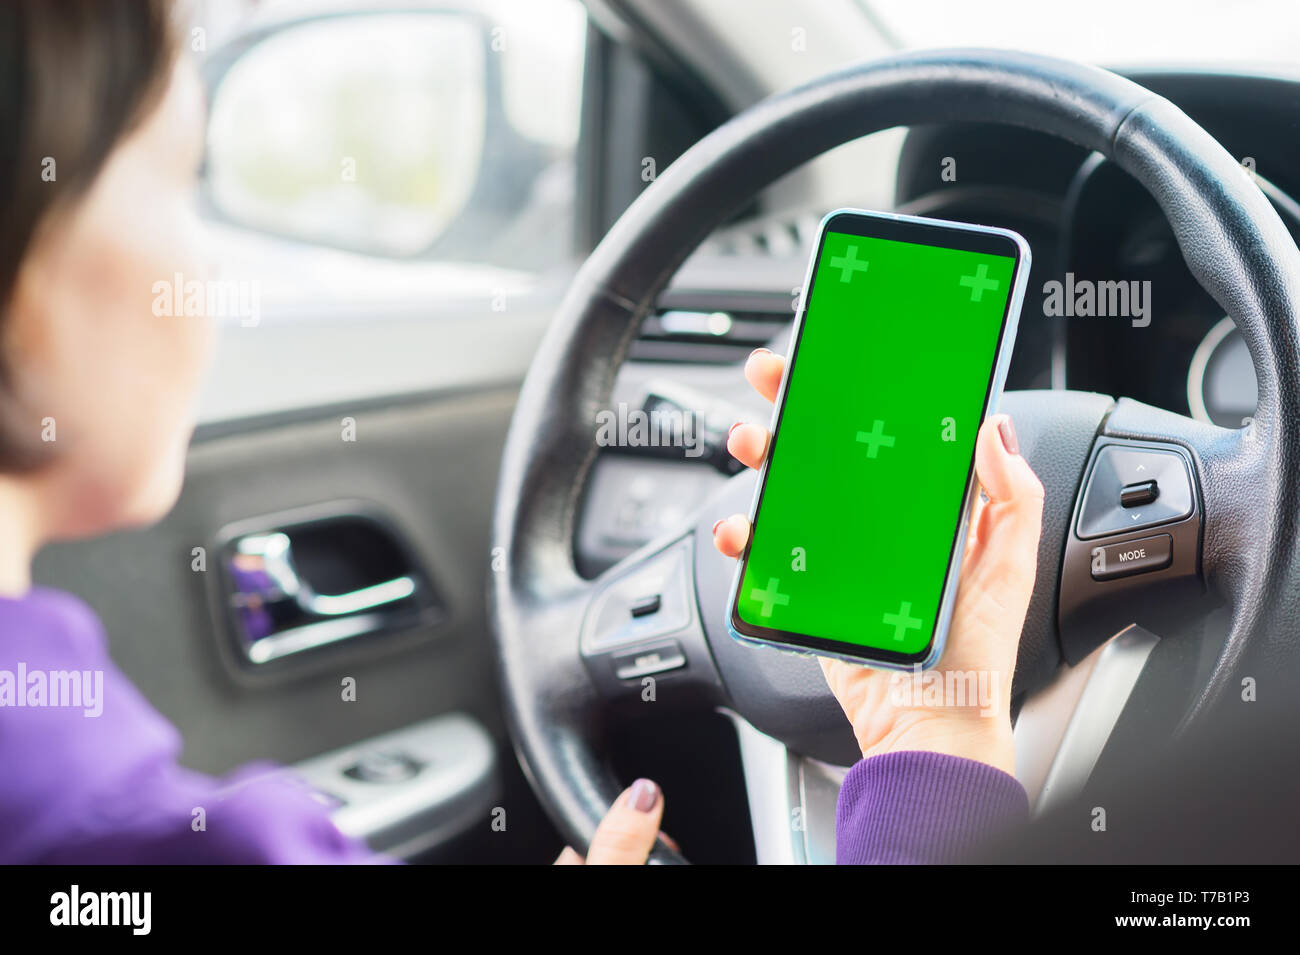 Young female driver using touch screen smartphone in a car. green chroma key on the phone display. - Stock Image